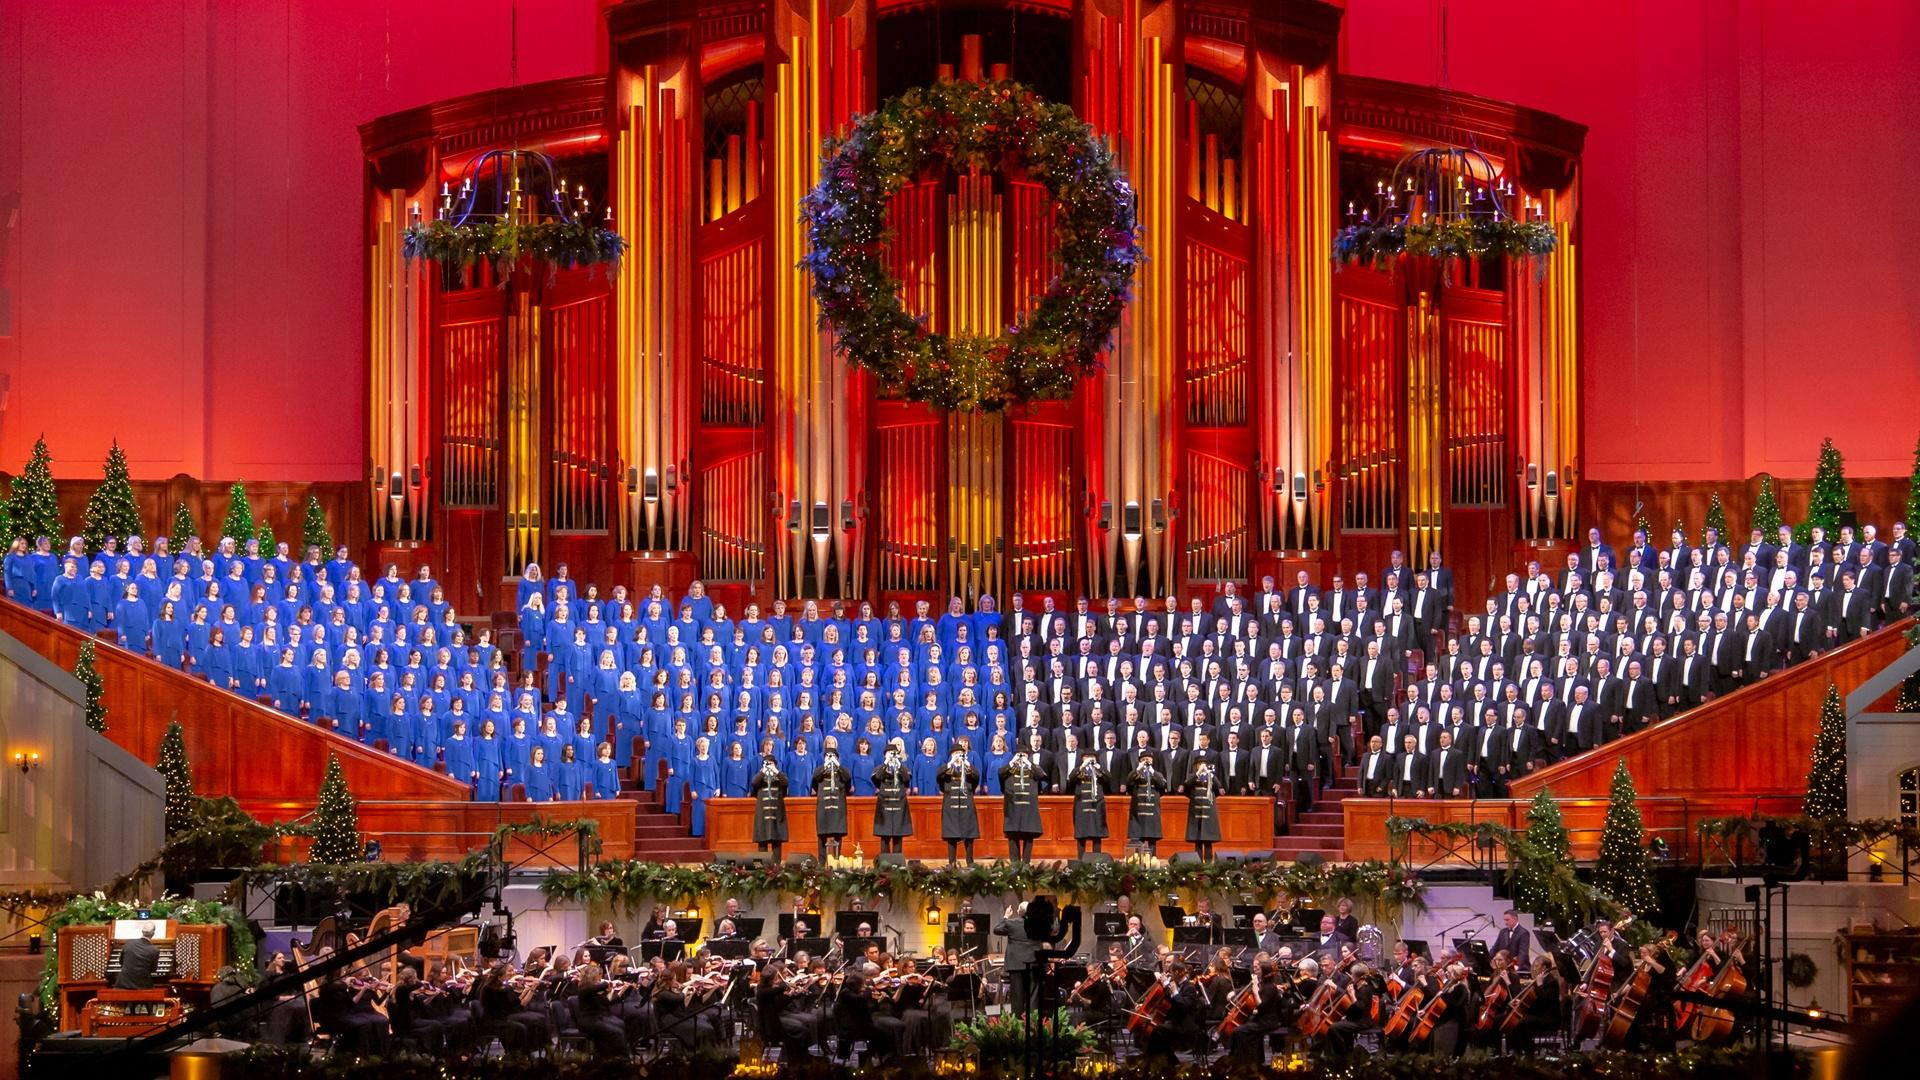 The Tabernacle Choir performs alongside conductor Mack Wilberg and the Orchestra at Temple Square in front of a large organ and festive Christmas decorations.